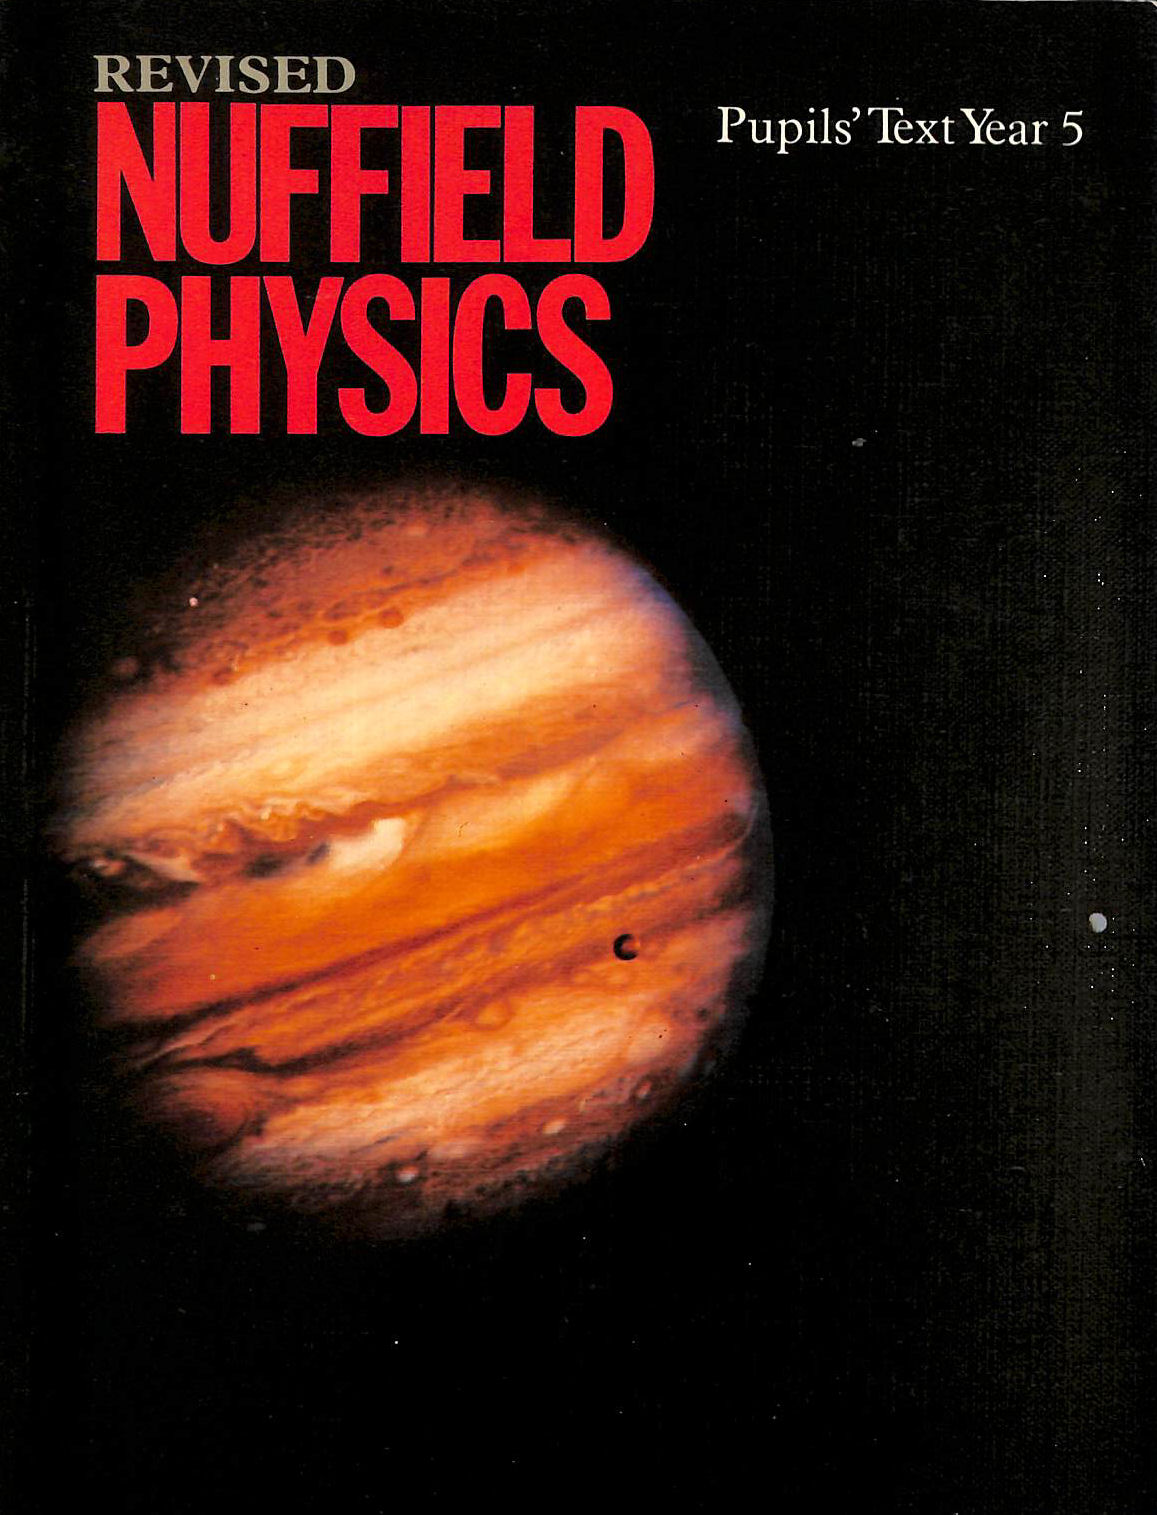 Image for Revised Nuffield Physics Pupils' Text Year 5